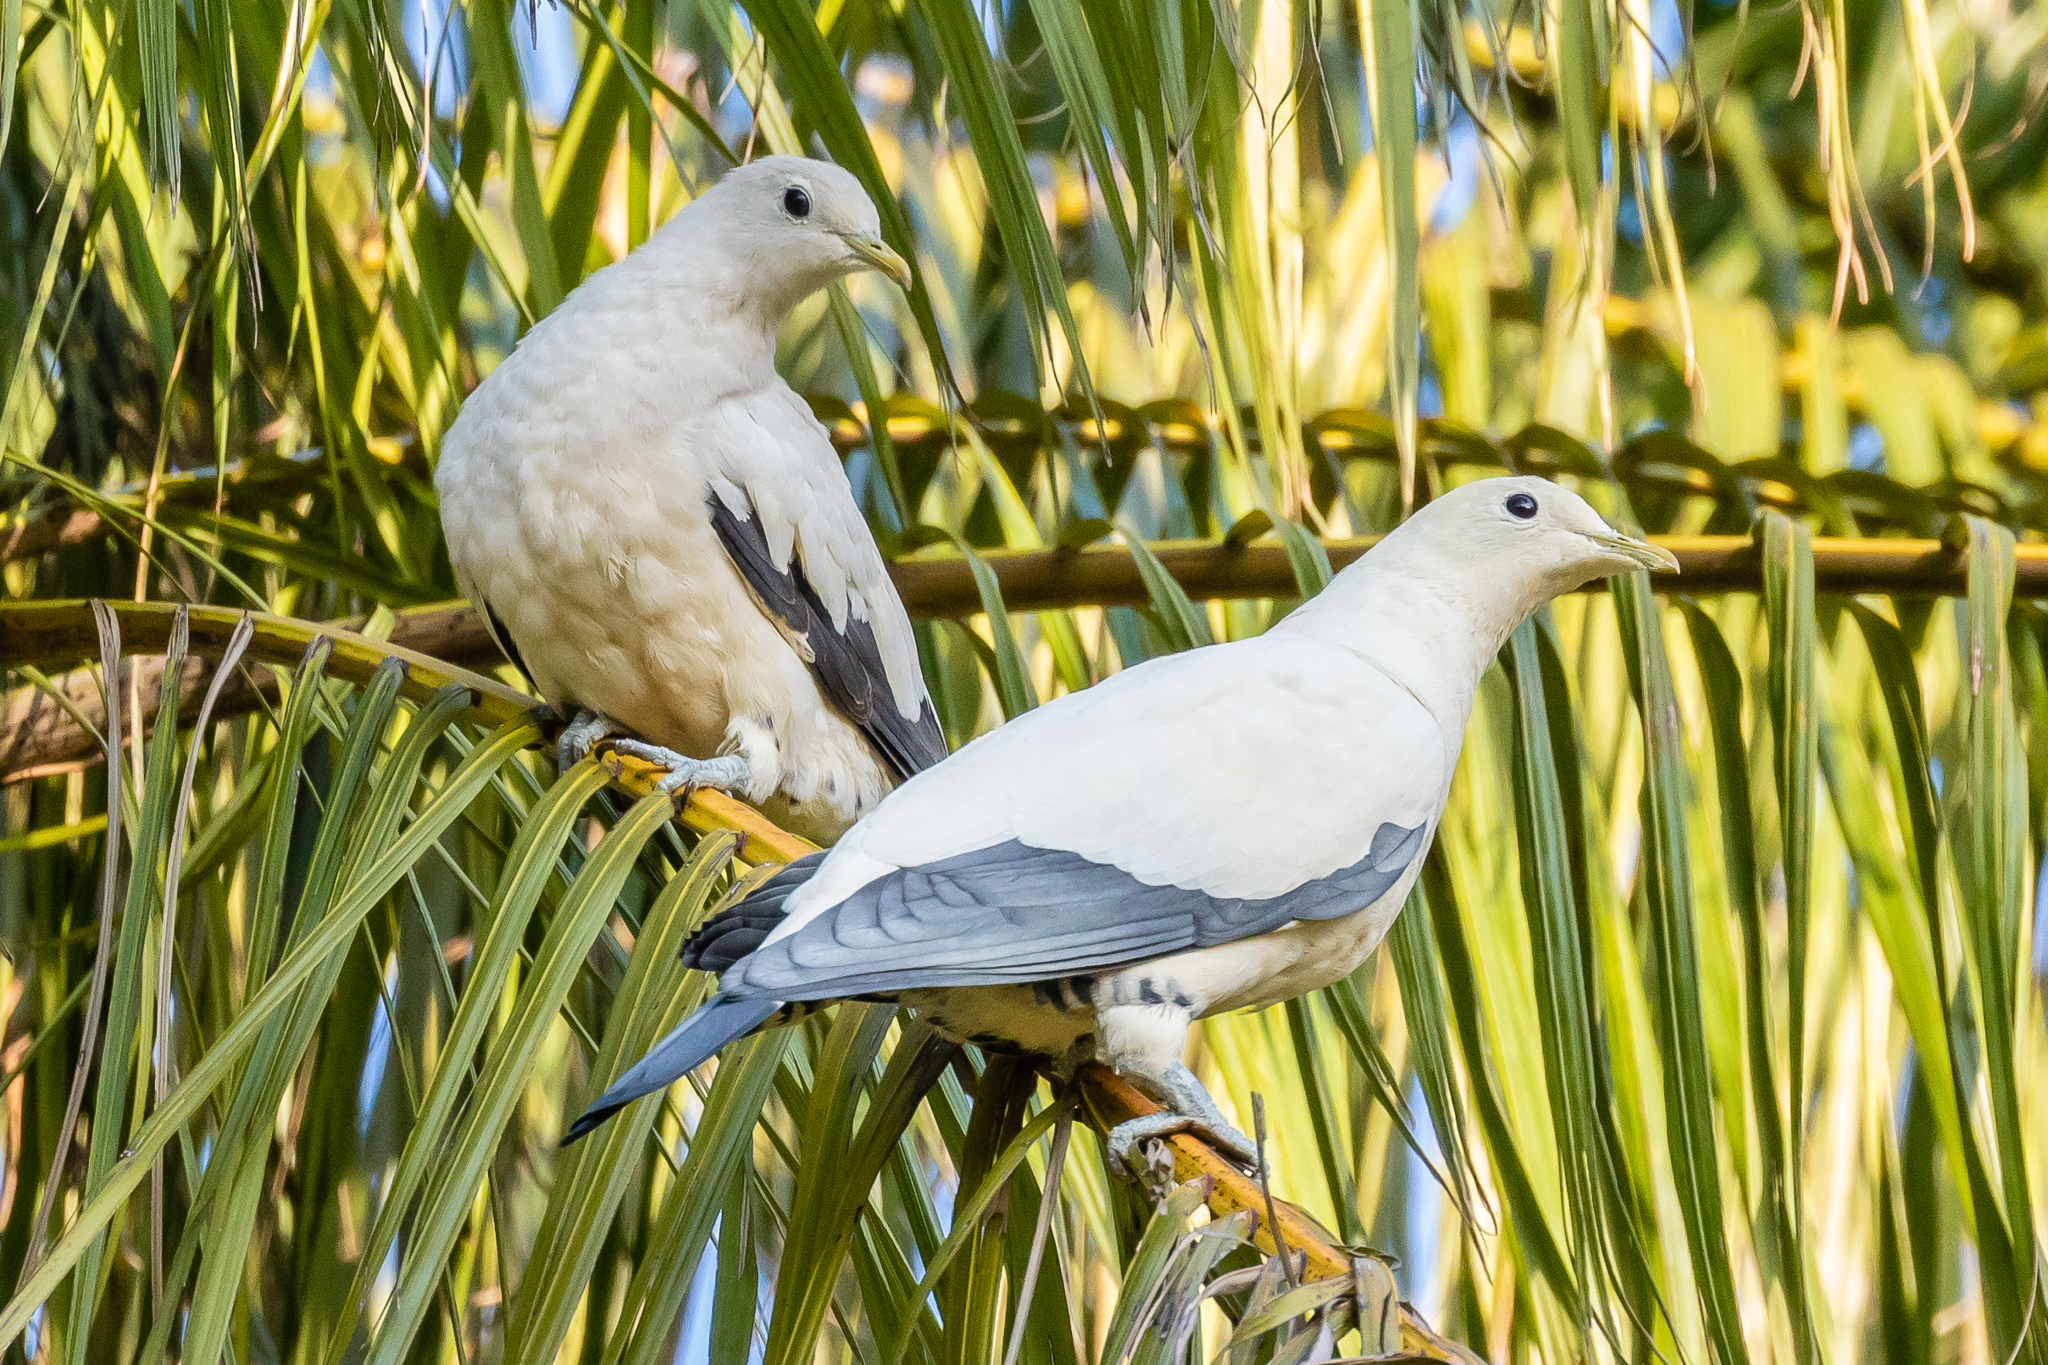 Pied Imperial Pigeons (42 cm) are distributed through Southeast Asia. They are found in Australia's north, breeding during the spring and summer, many migrating to New Guinea for the winter. They feed in trees on fruit.